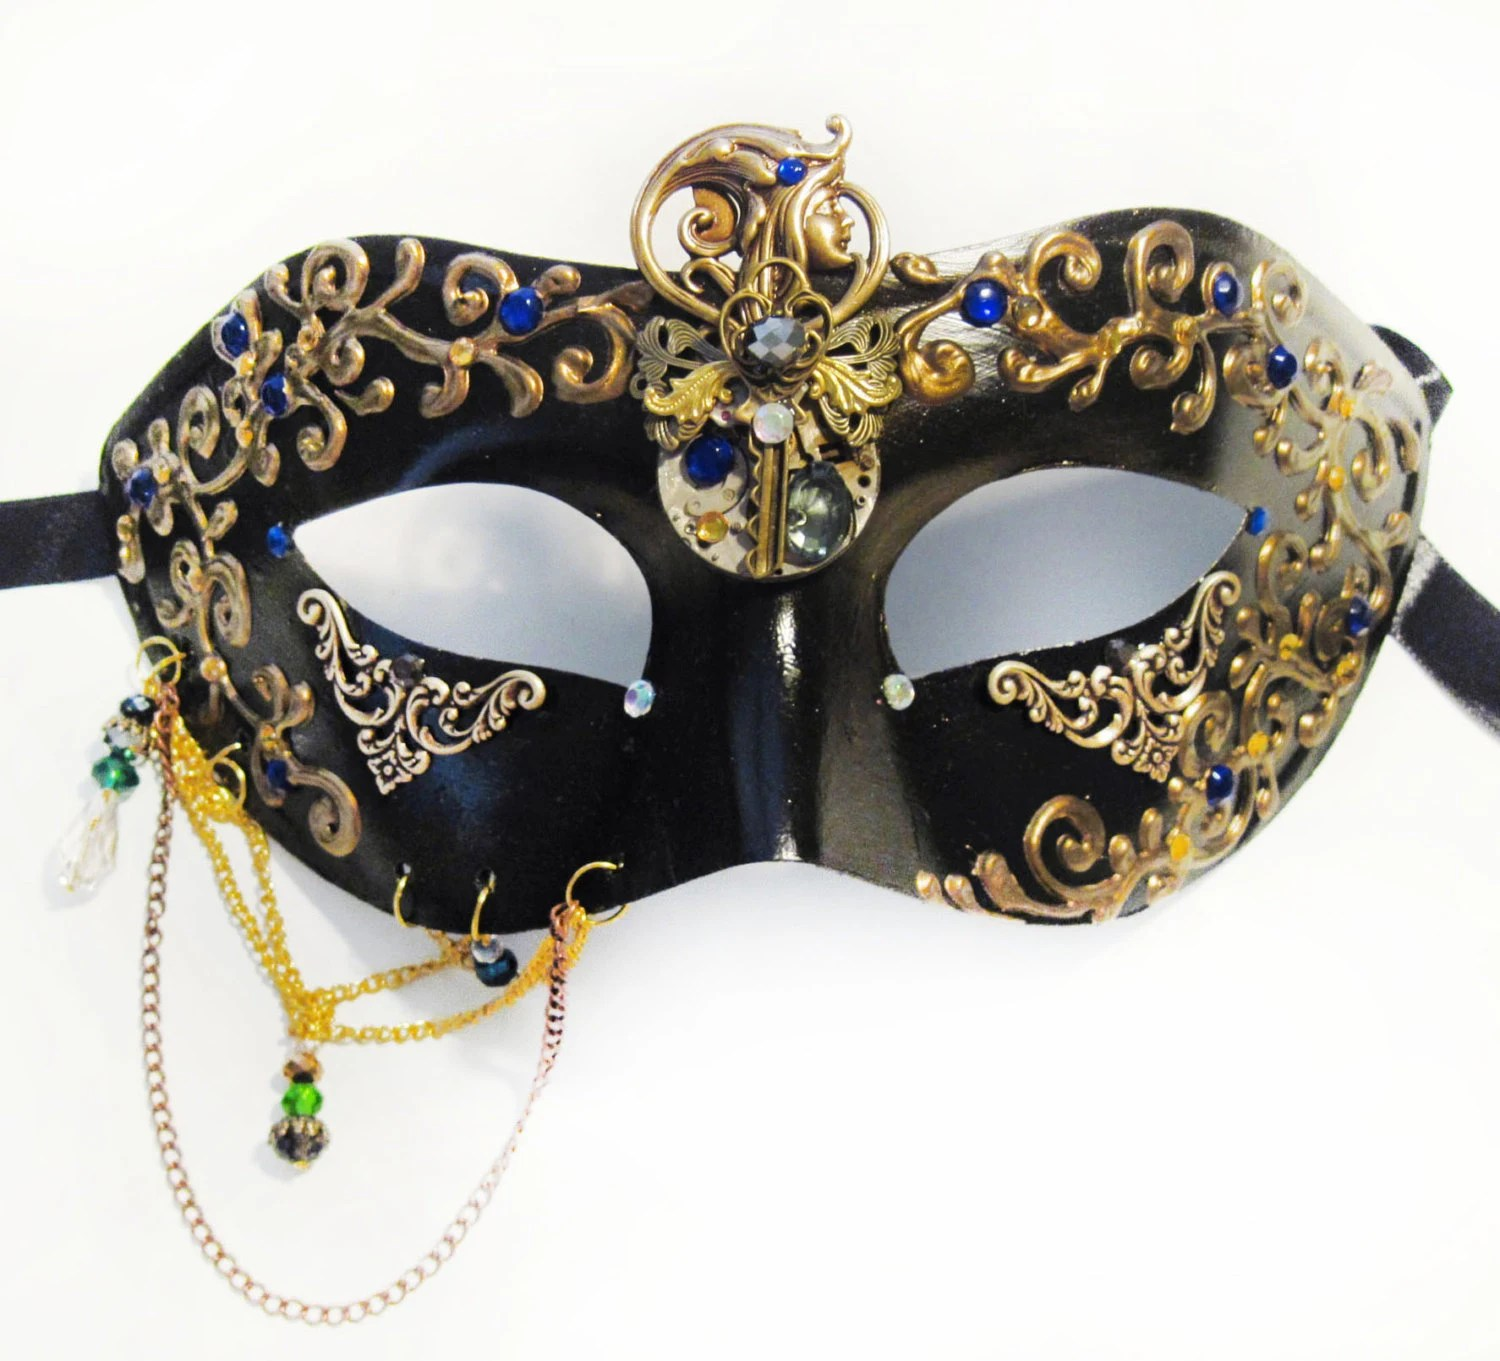 Punk Fashion Masquerade Mask Designer Steampunk Art Venice Etsy